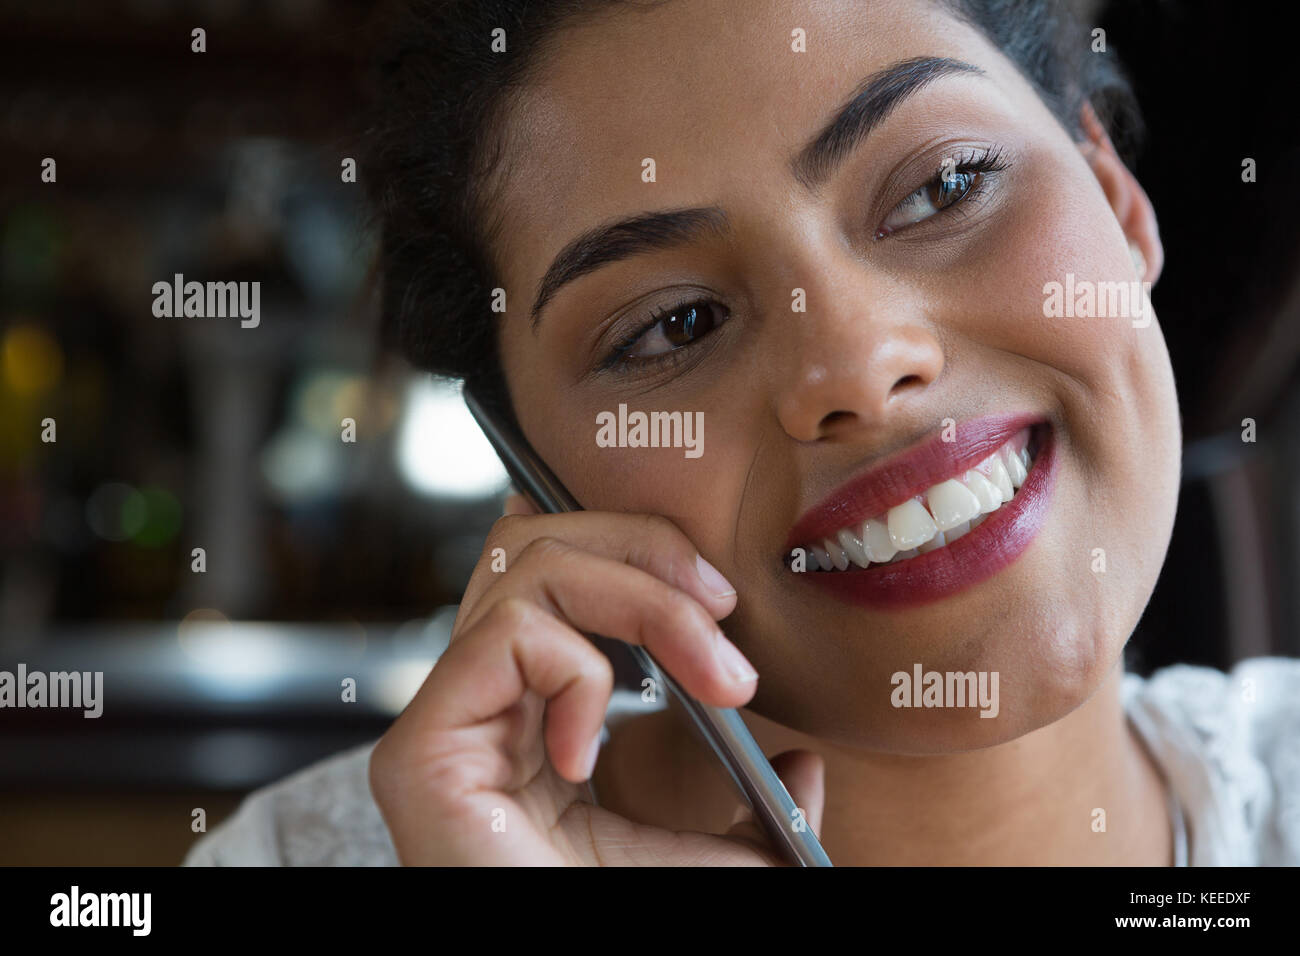 Woman talking on the phone at bar - Stock Image